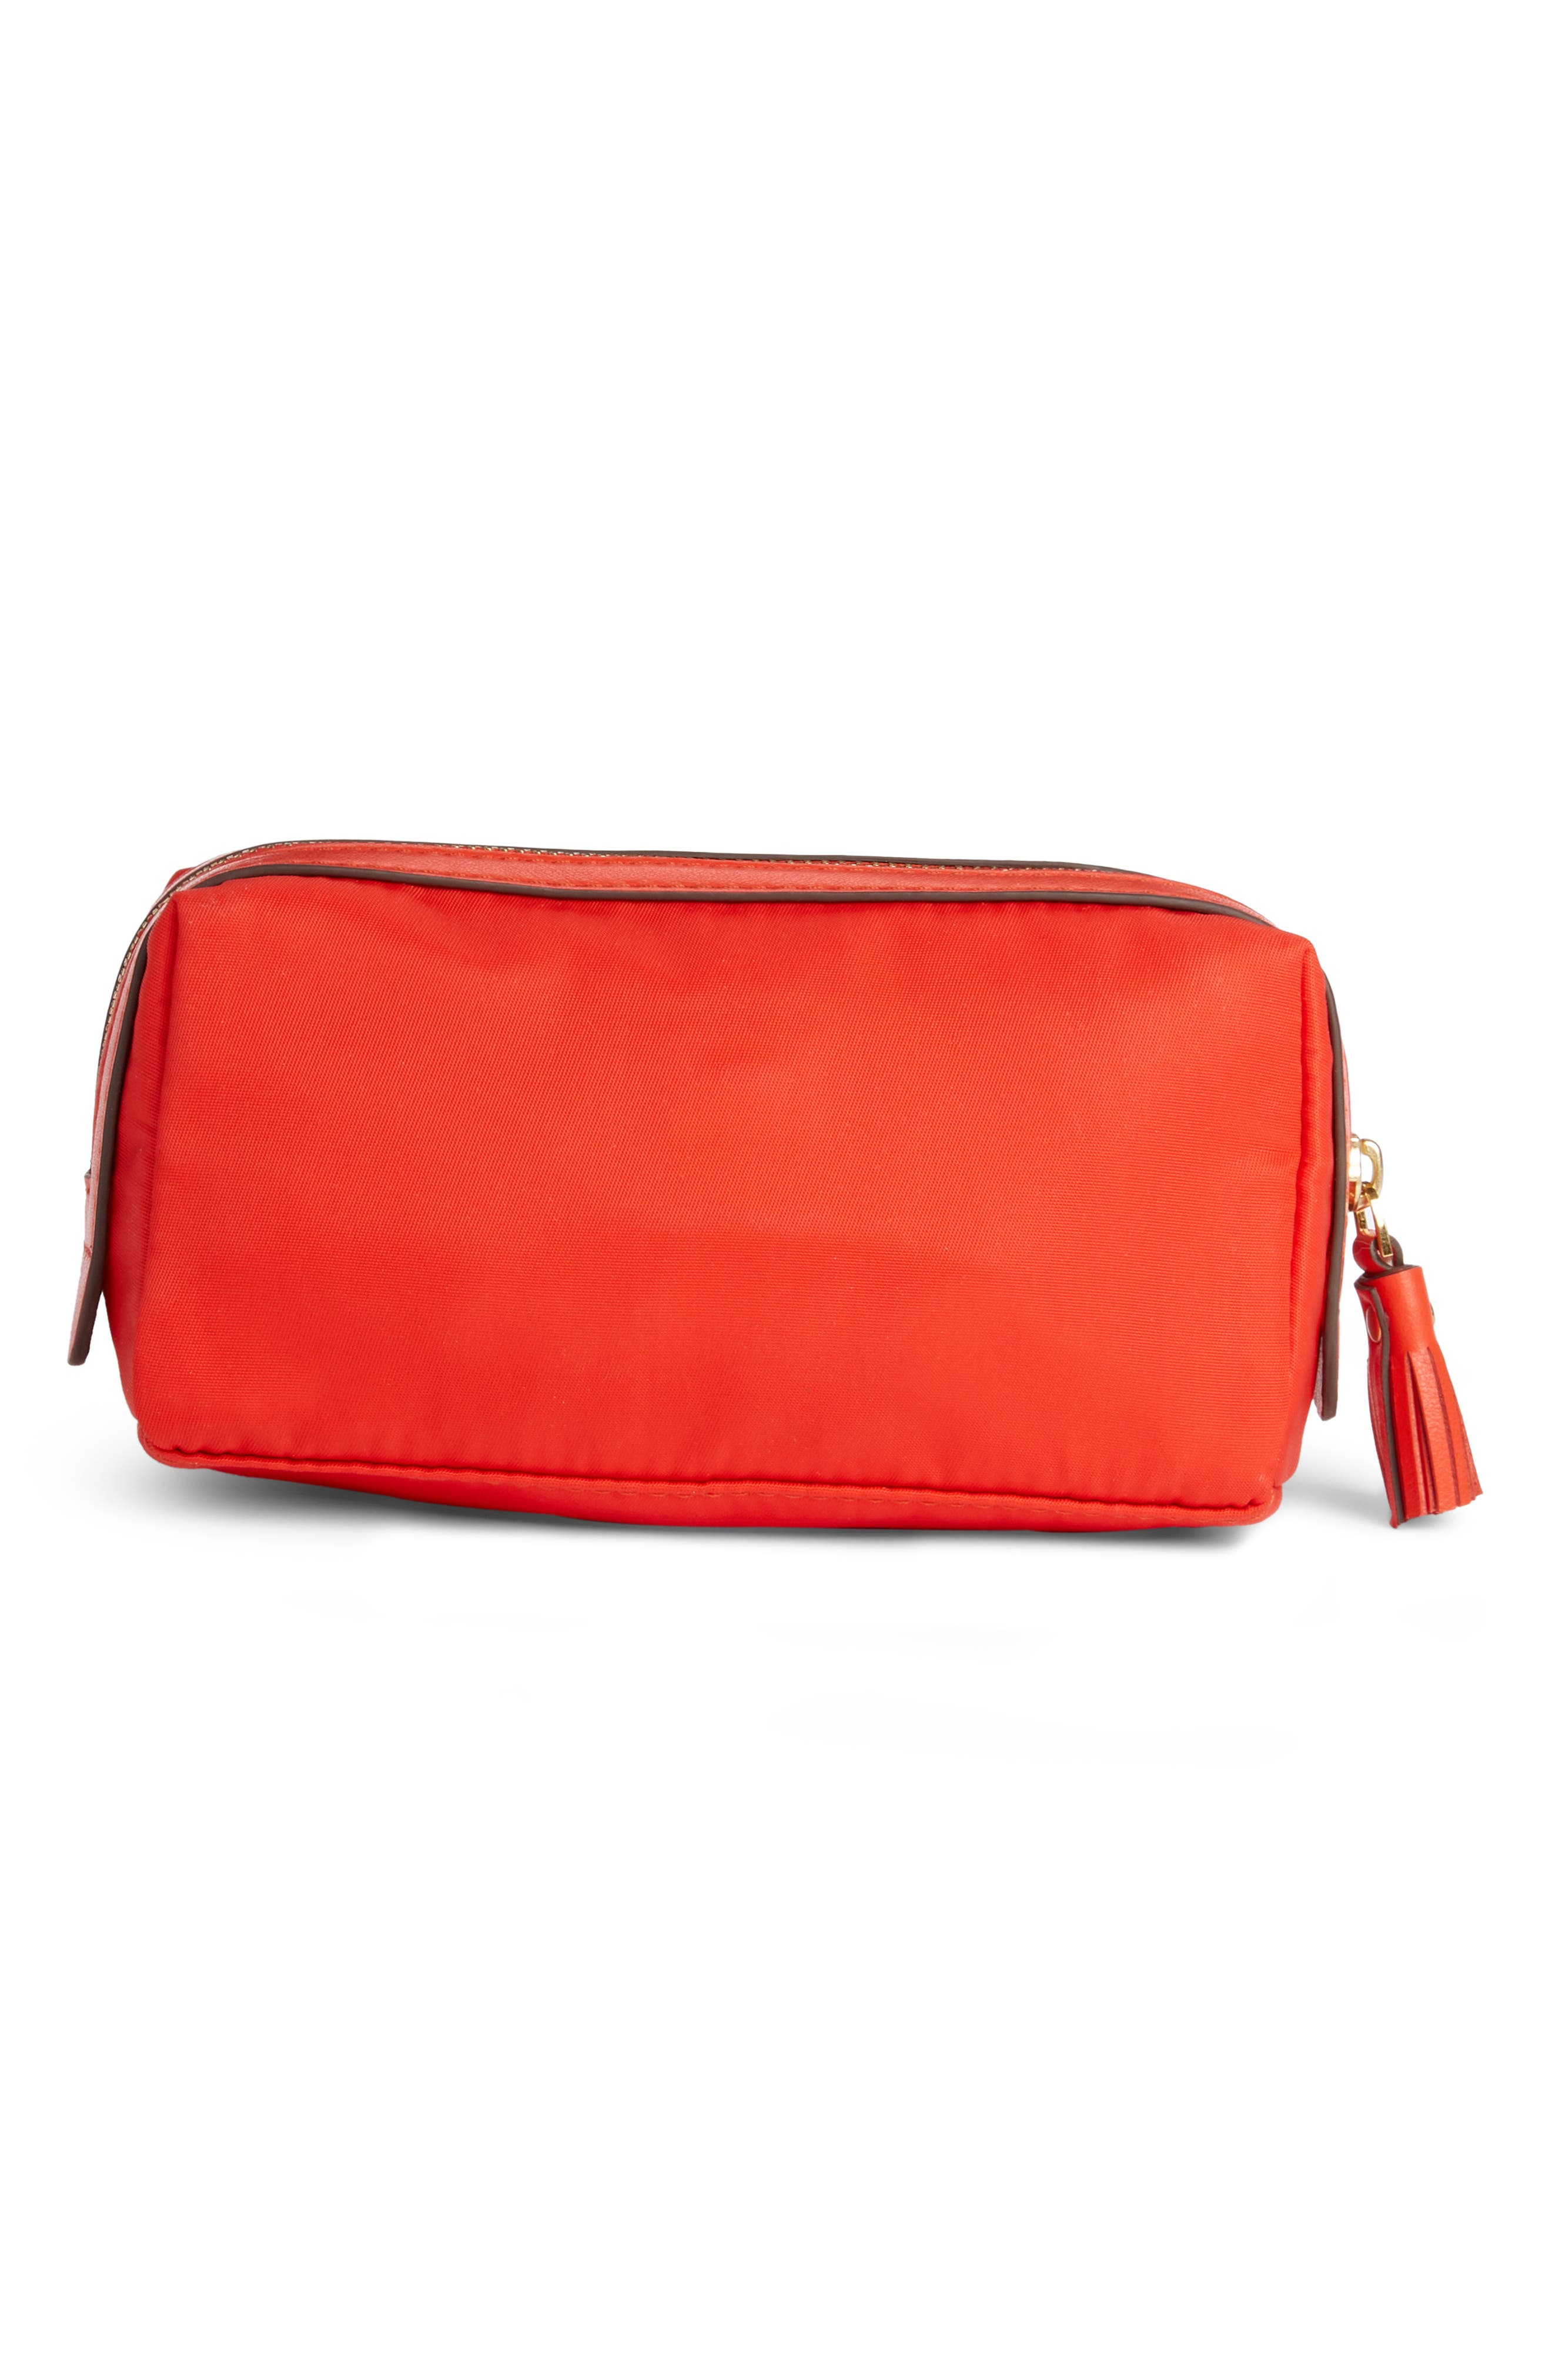 Girlie Stuff Cosmetics Case,                             Alternate thumbnail 2, color,                             FLAME RED